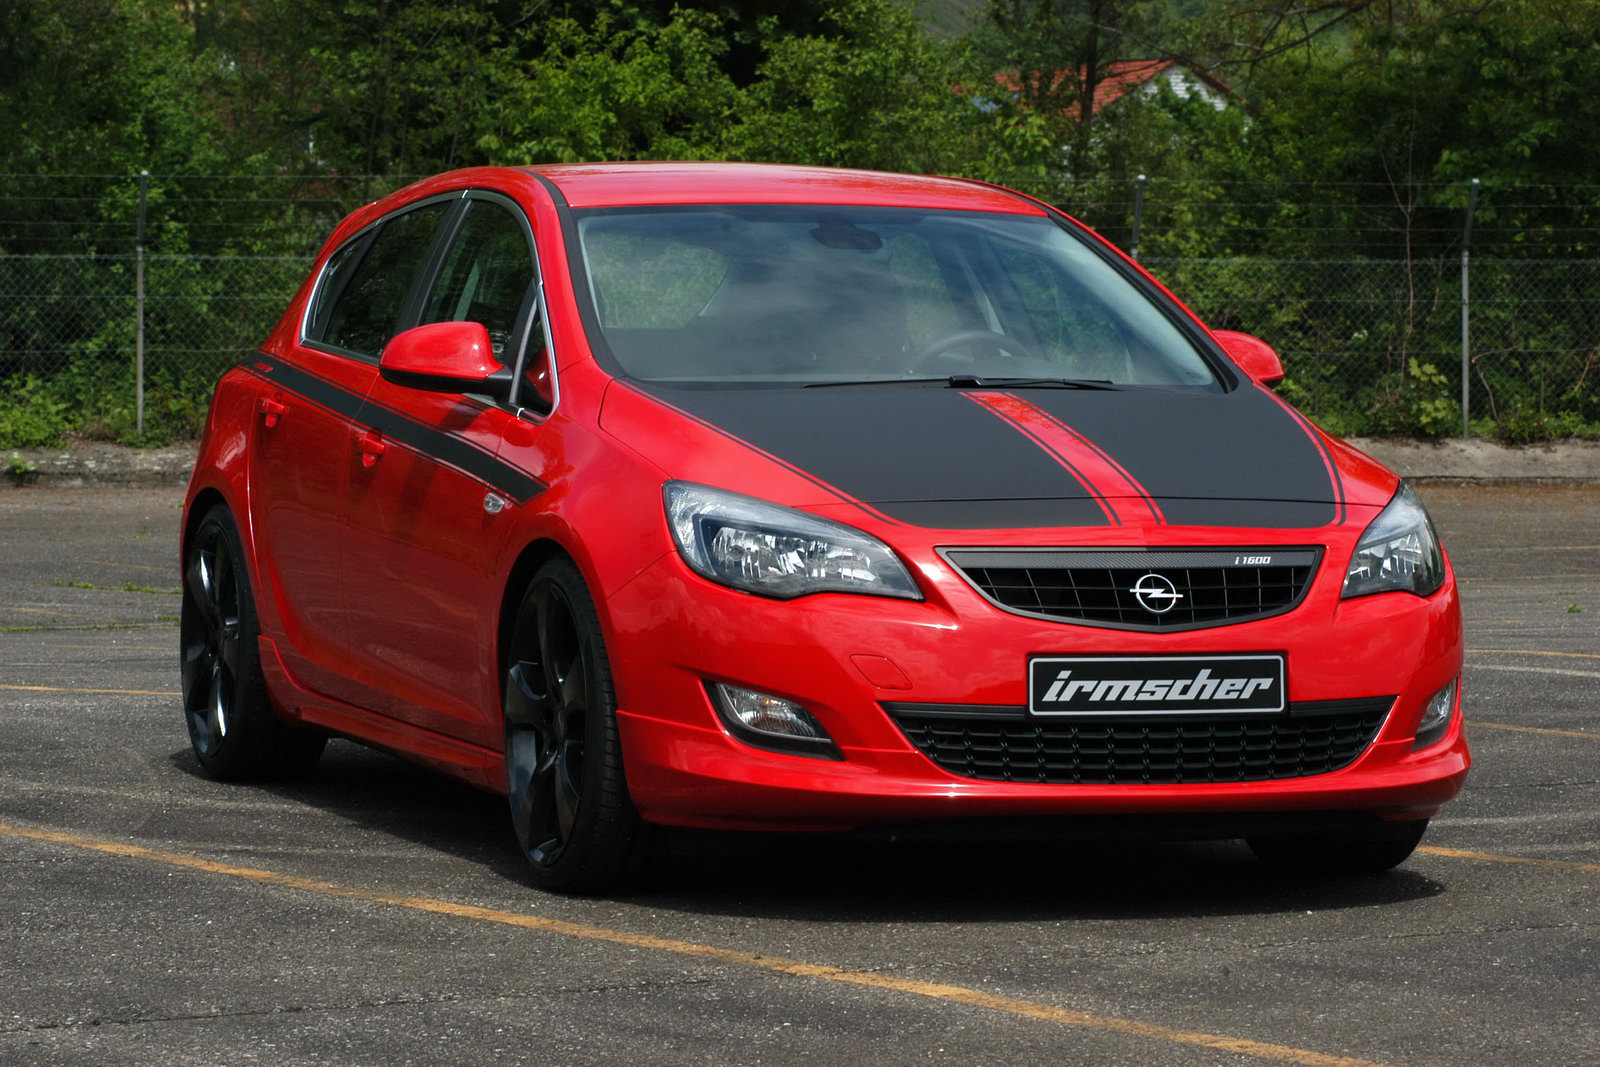 The Car Irmscher Opel Astra I1600 With Upgraded 200hp 1 6